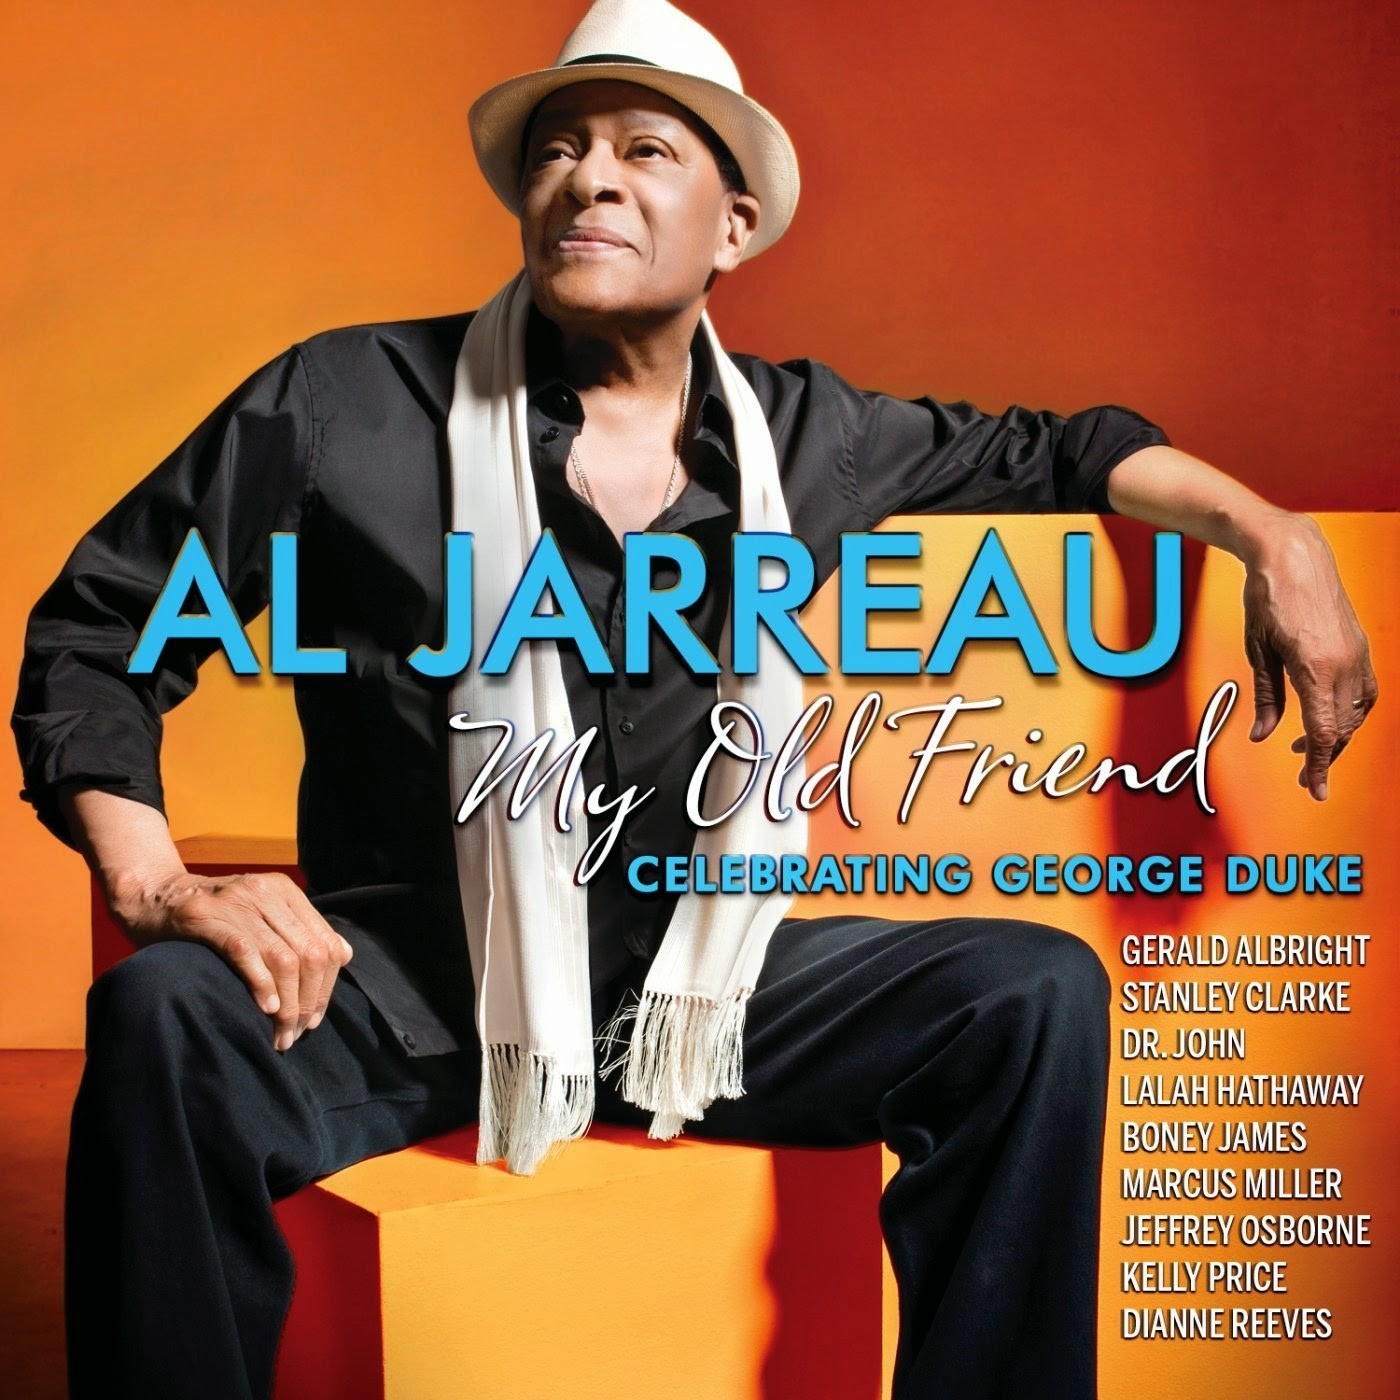 http://www.d4am.net/2014/09/al-jarreau-my-old-friend.html